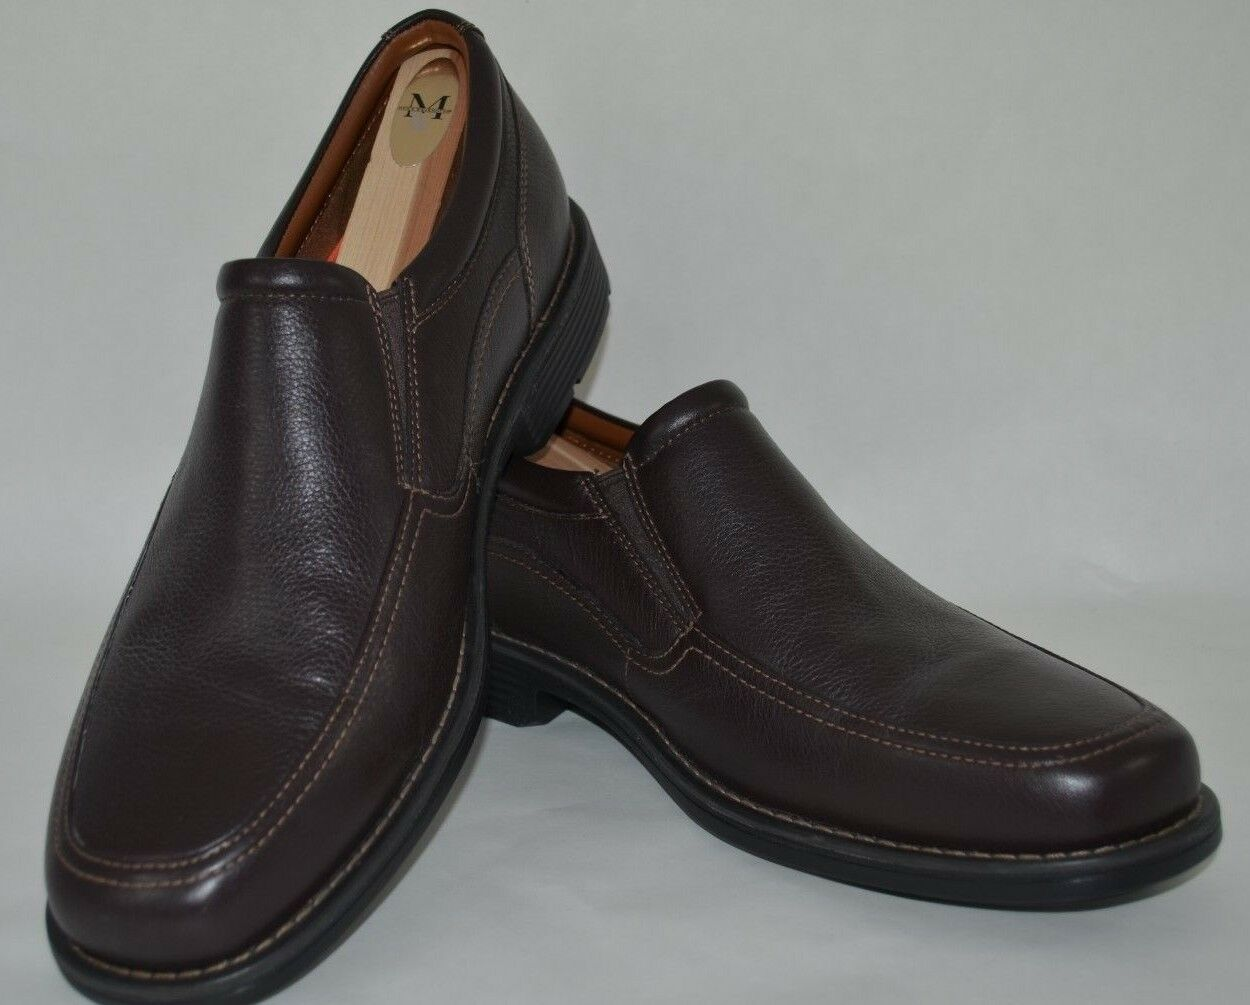 Mens Rockport Day Trading TWIN GORE Slip On A13407 Dark Brown Leather Loafer New